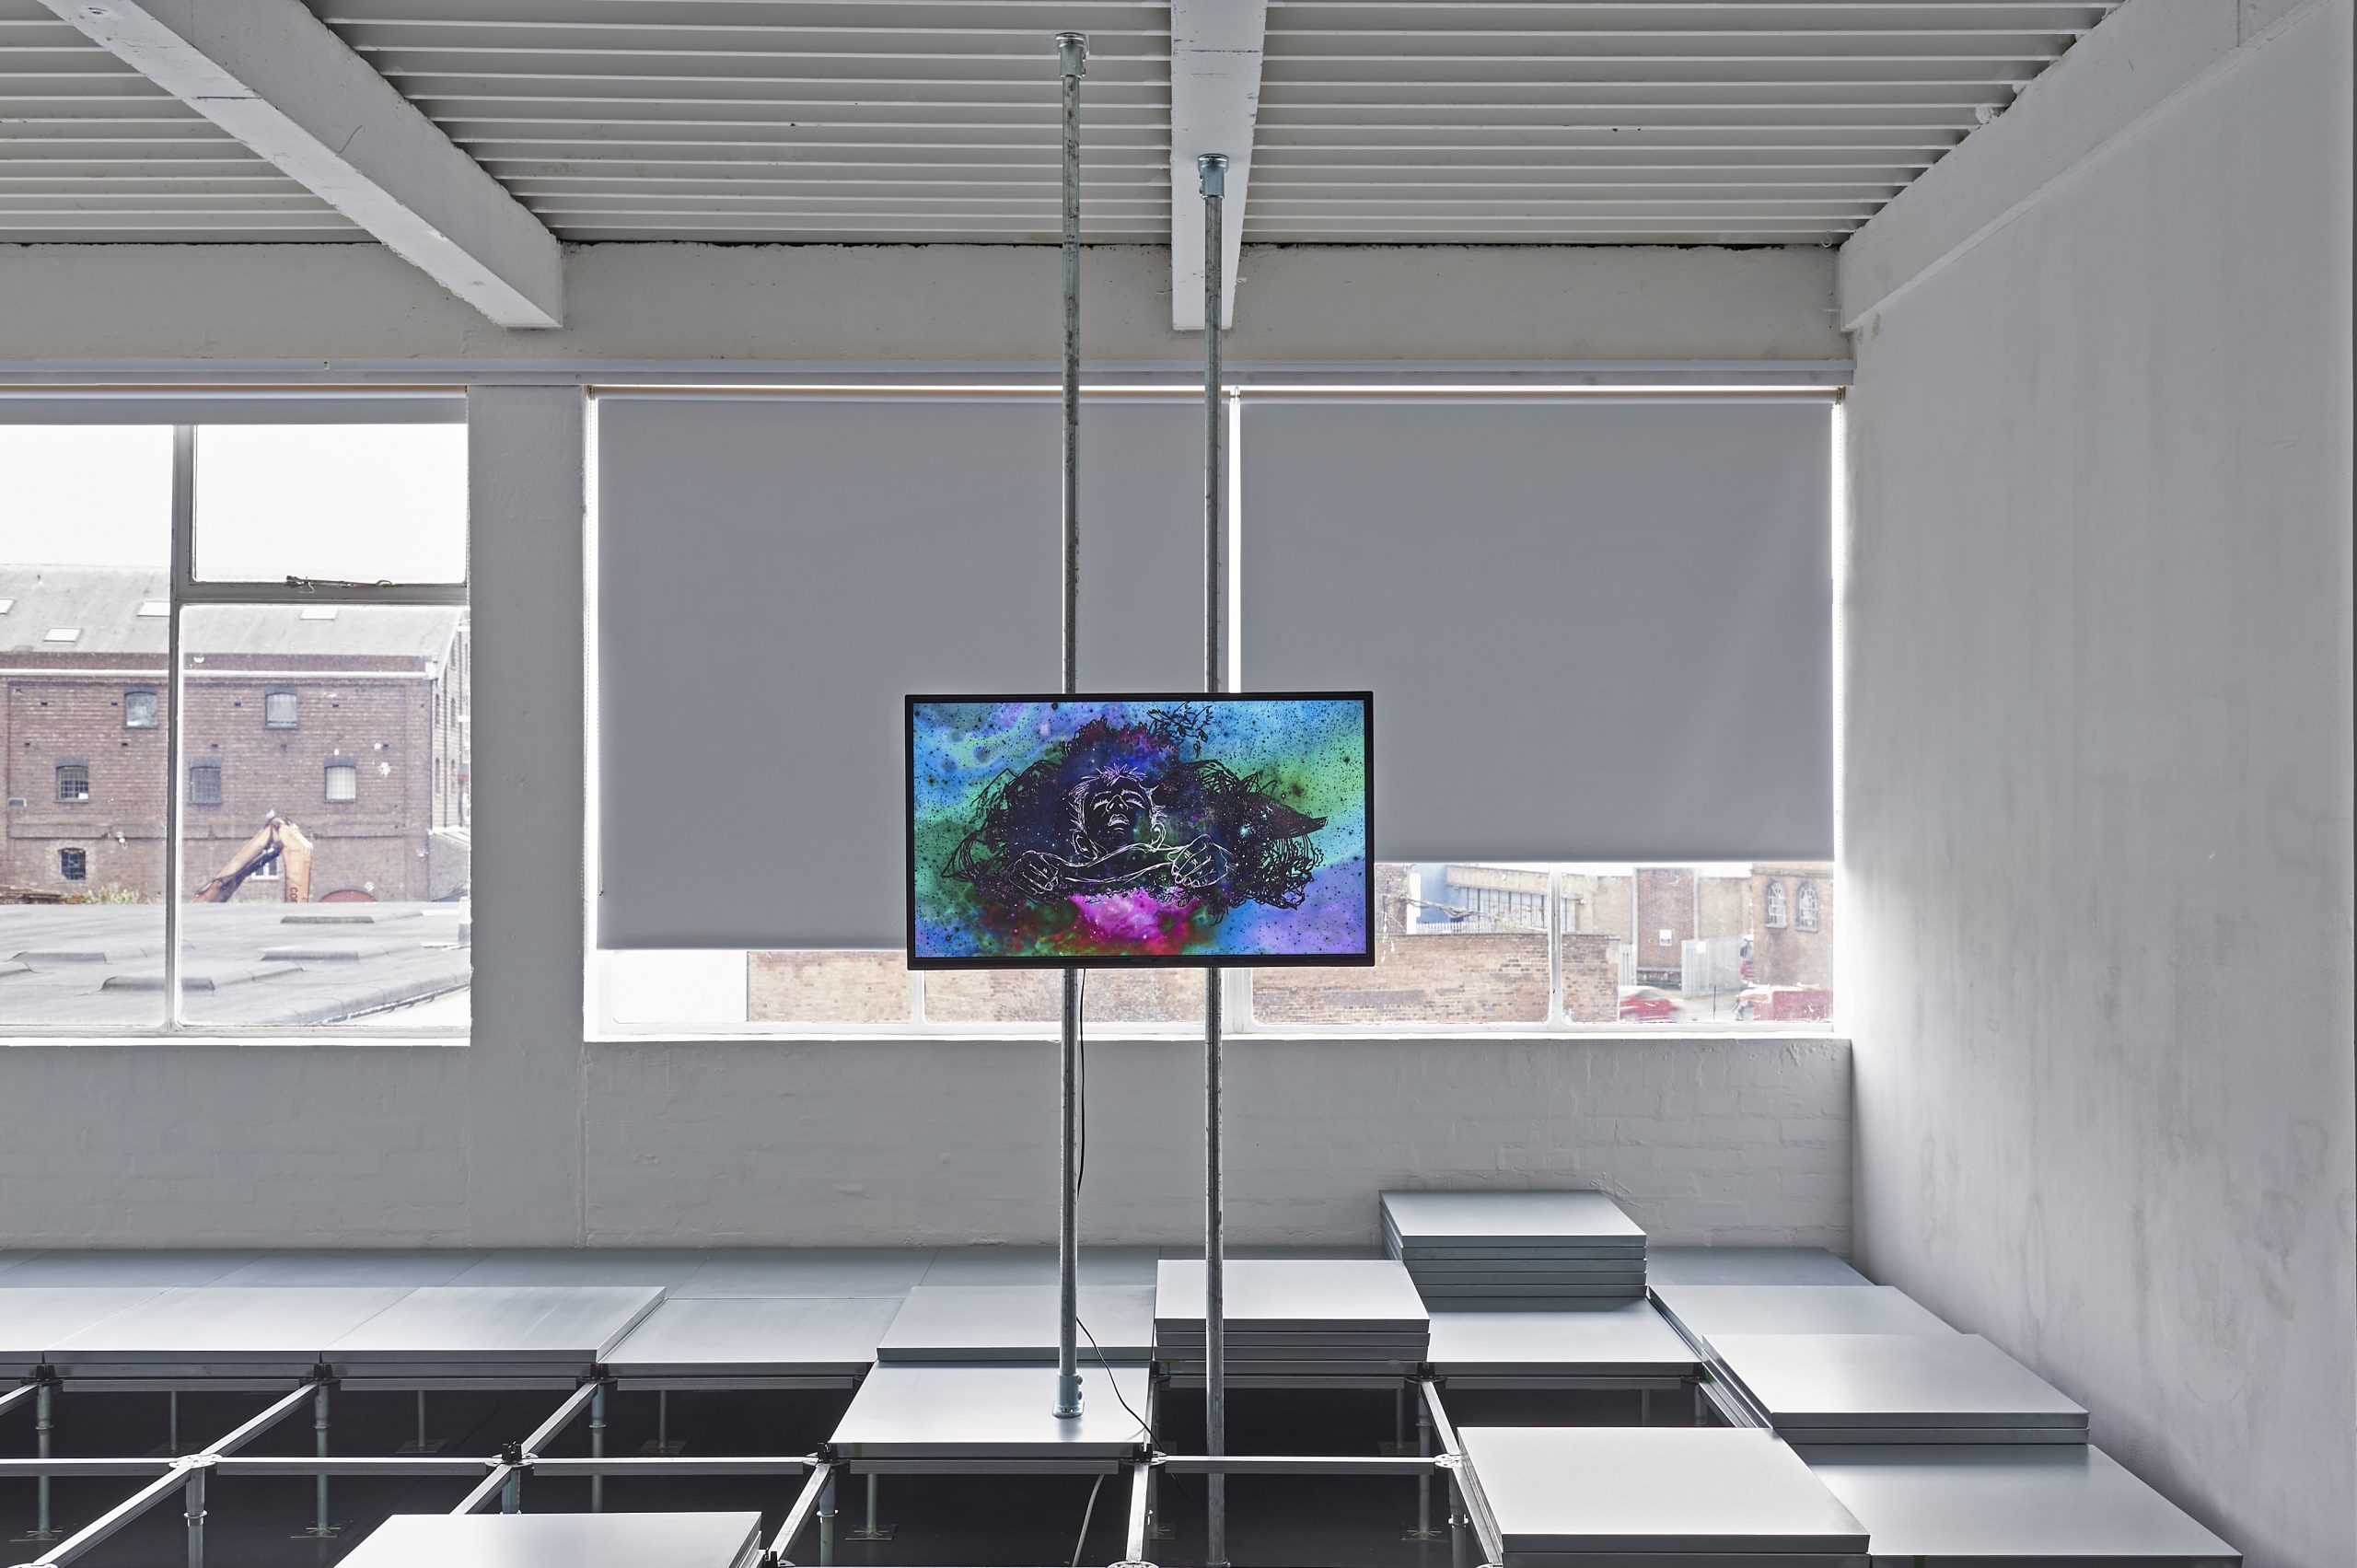 Metal squares form a raised platform across the floor. A video is showing on a tv mounted above on scaffold.